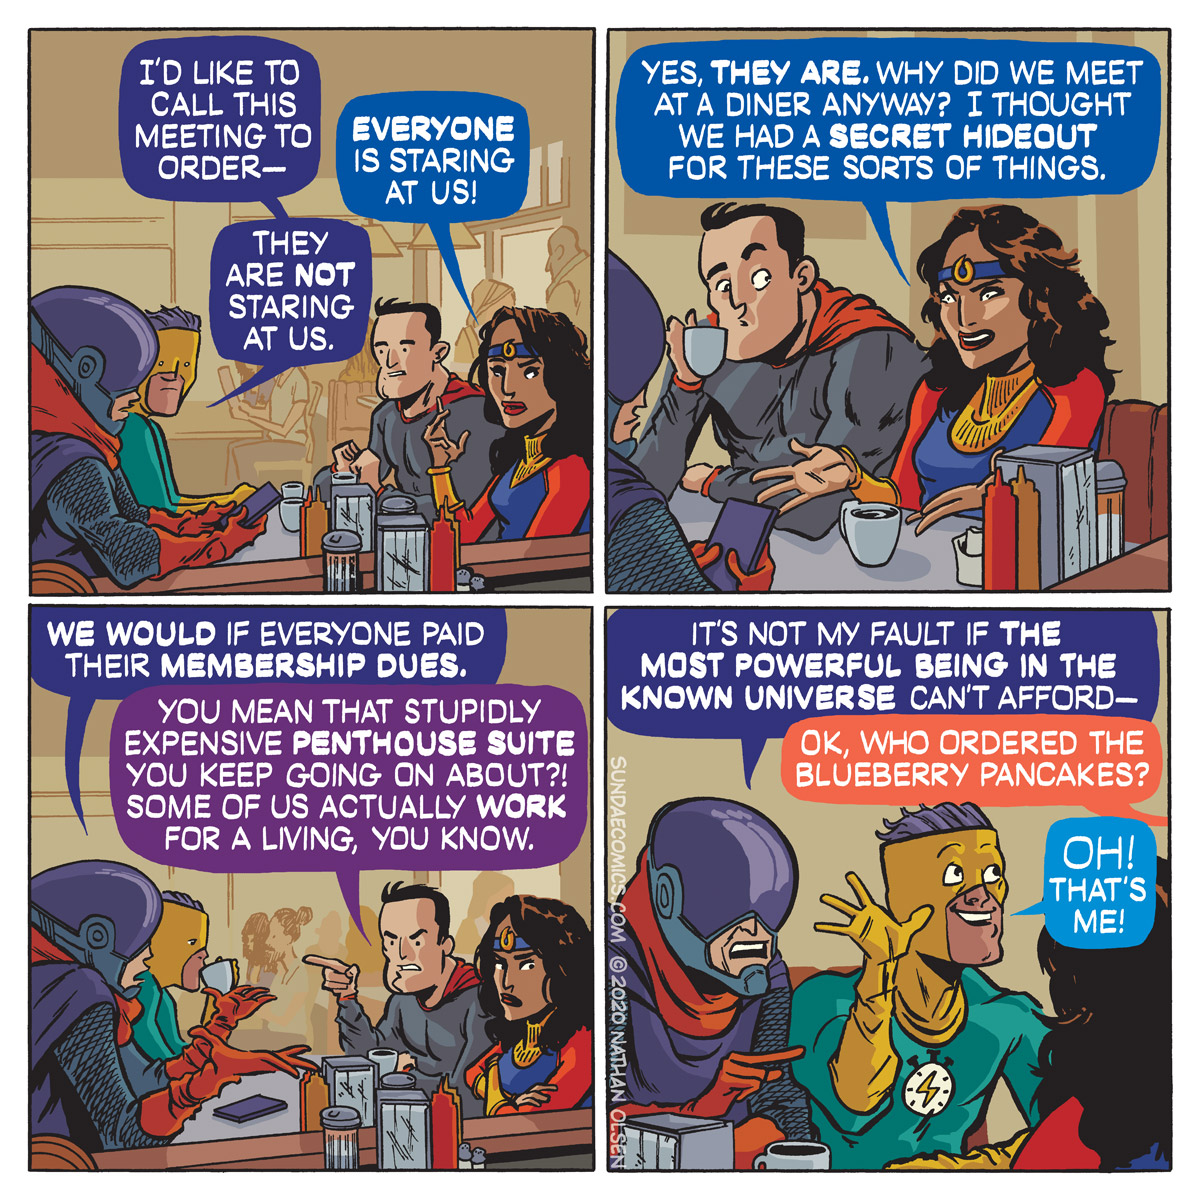 A webcomic about a superhero team that questions why they are holding their meeting at a diner. No one is happy.